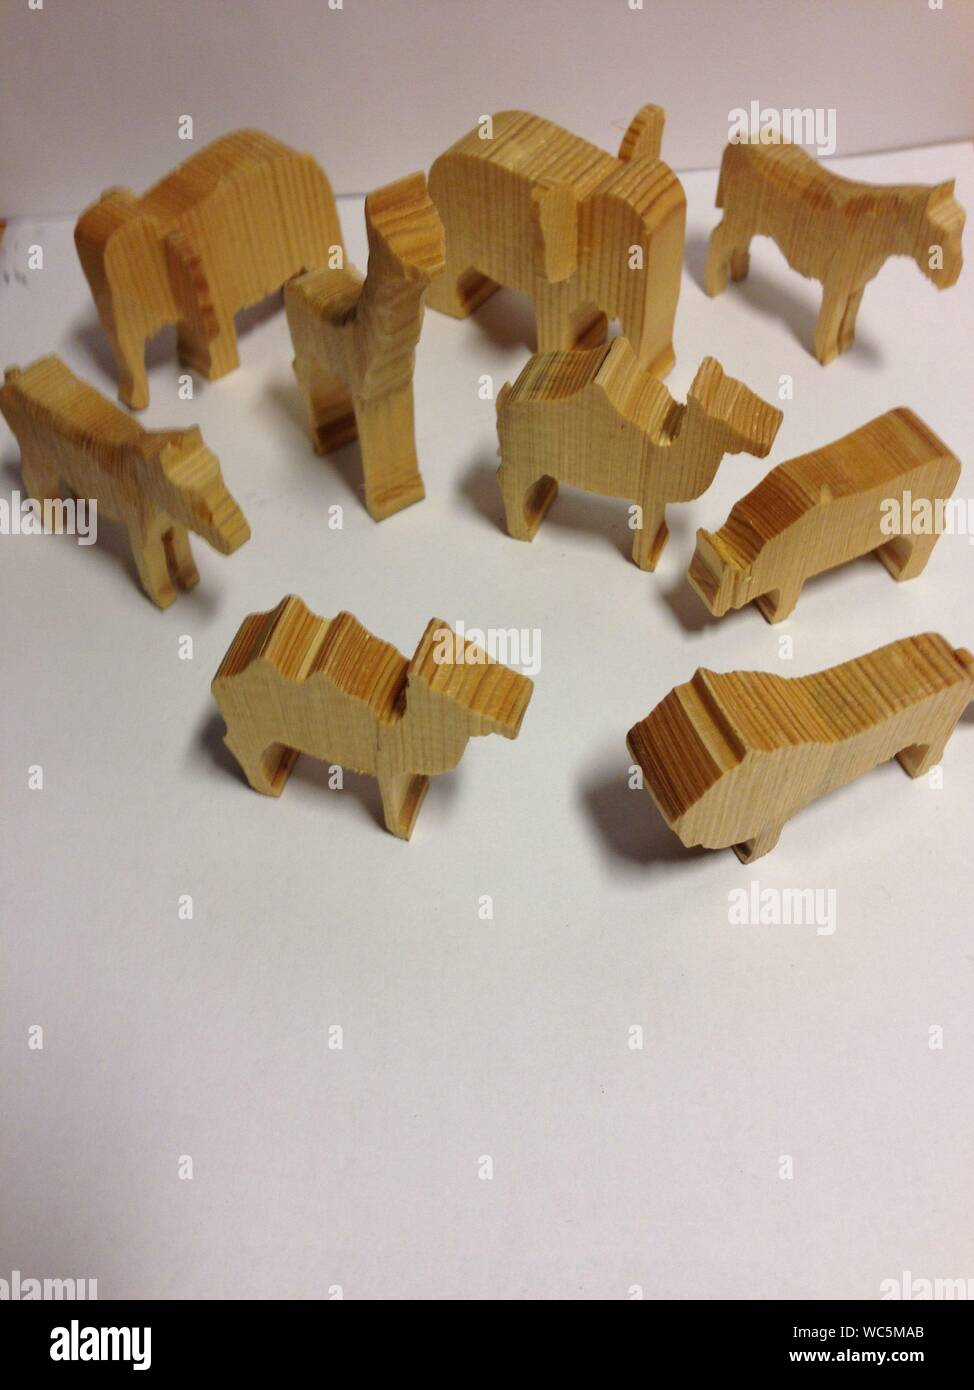 High Angle View Of Carved Wooden Animals Stock Photo